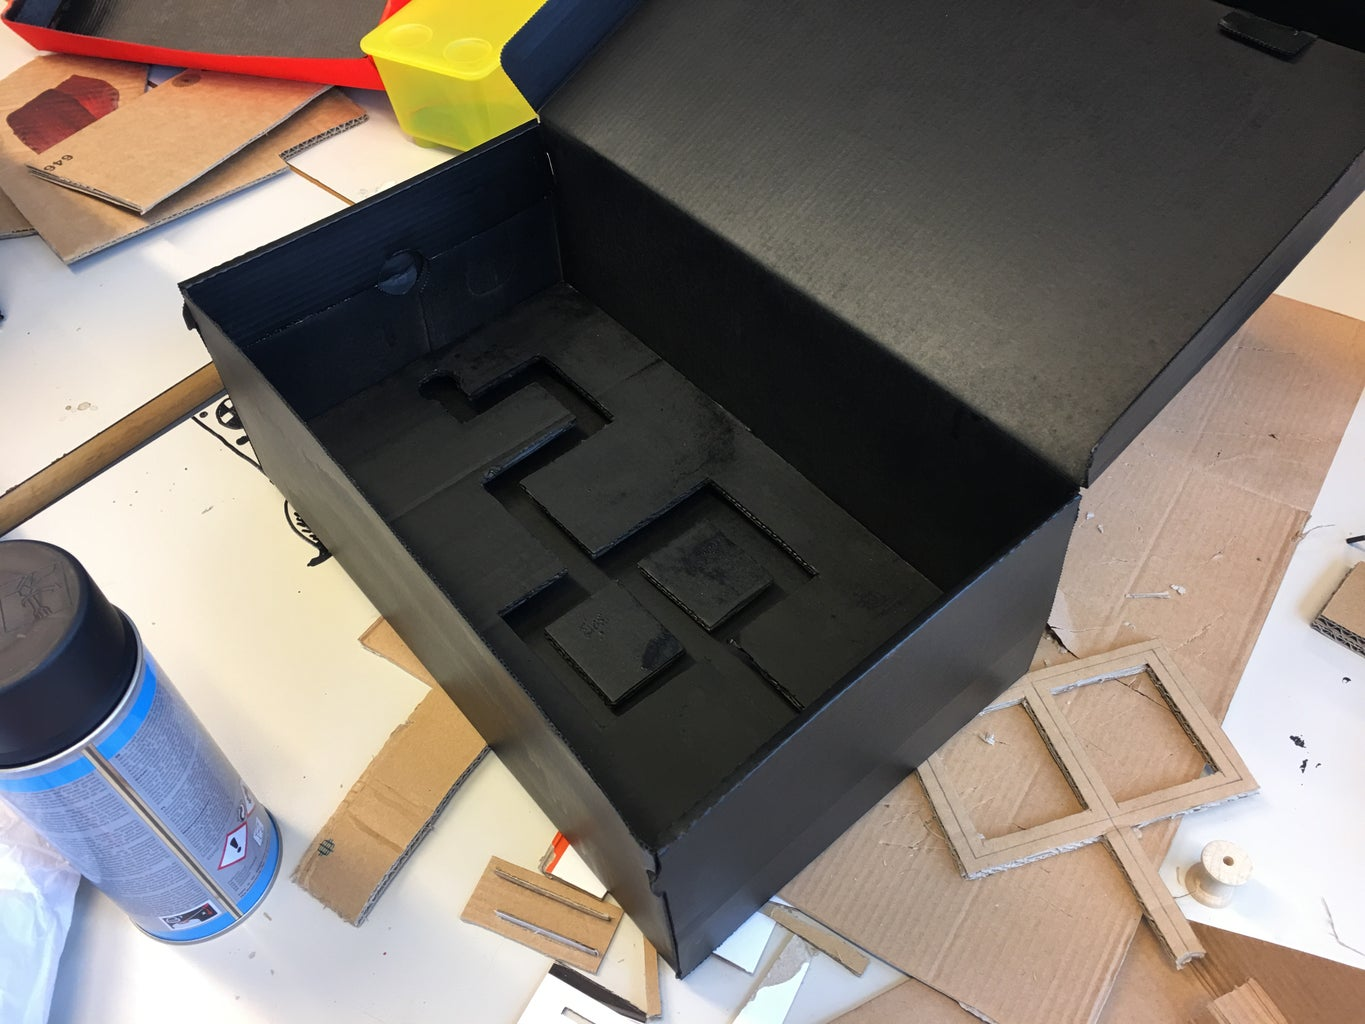 Step 1: Design and Build Your Maze!